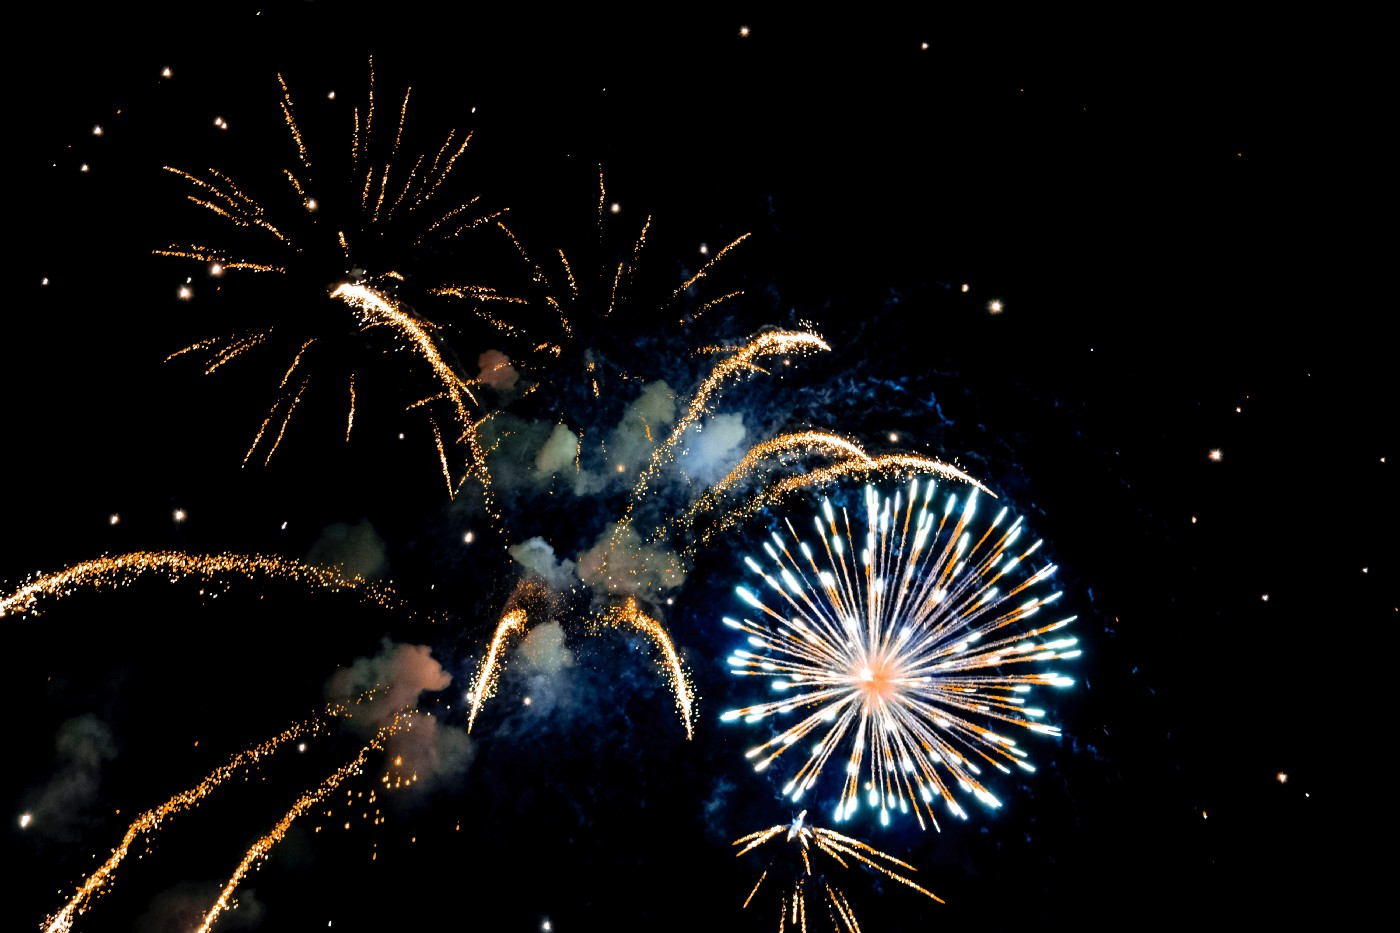 Picture of gold, blue, and white fireworks exploding in the night sky